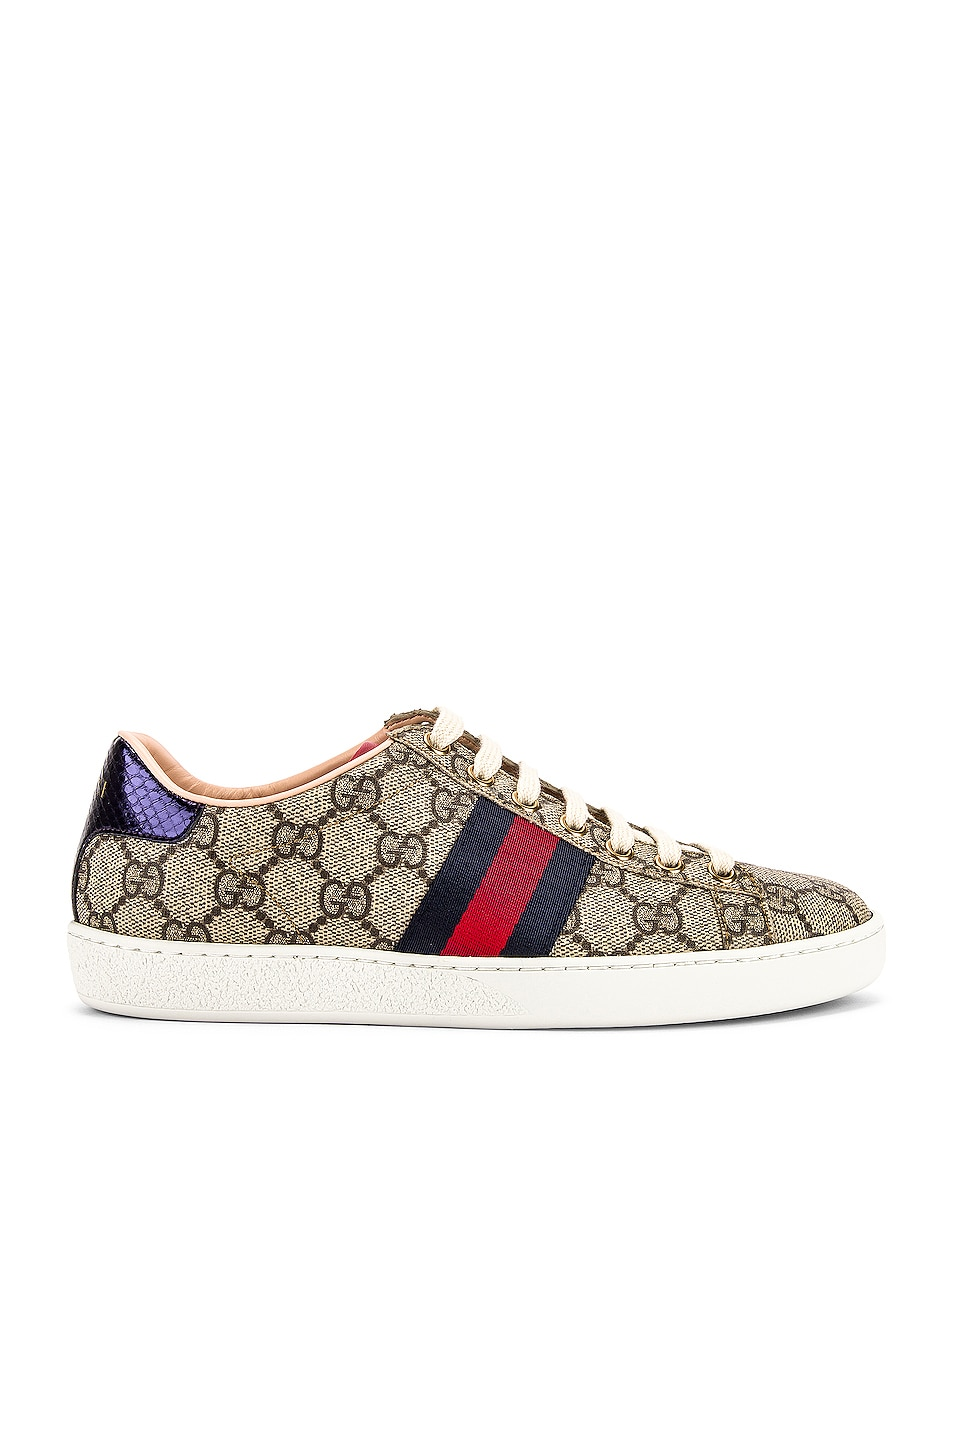 Image 2 of Gucci New Ace GG Sneakers in Beige Ebony & Red